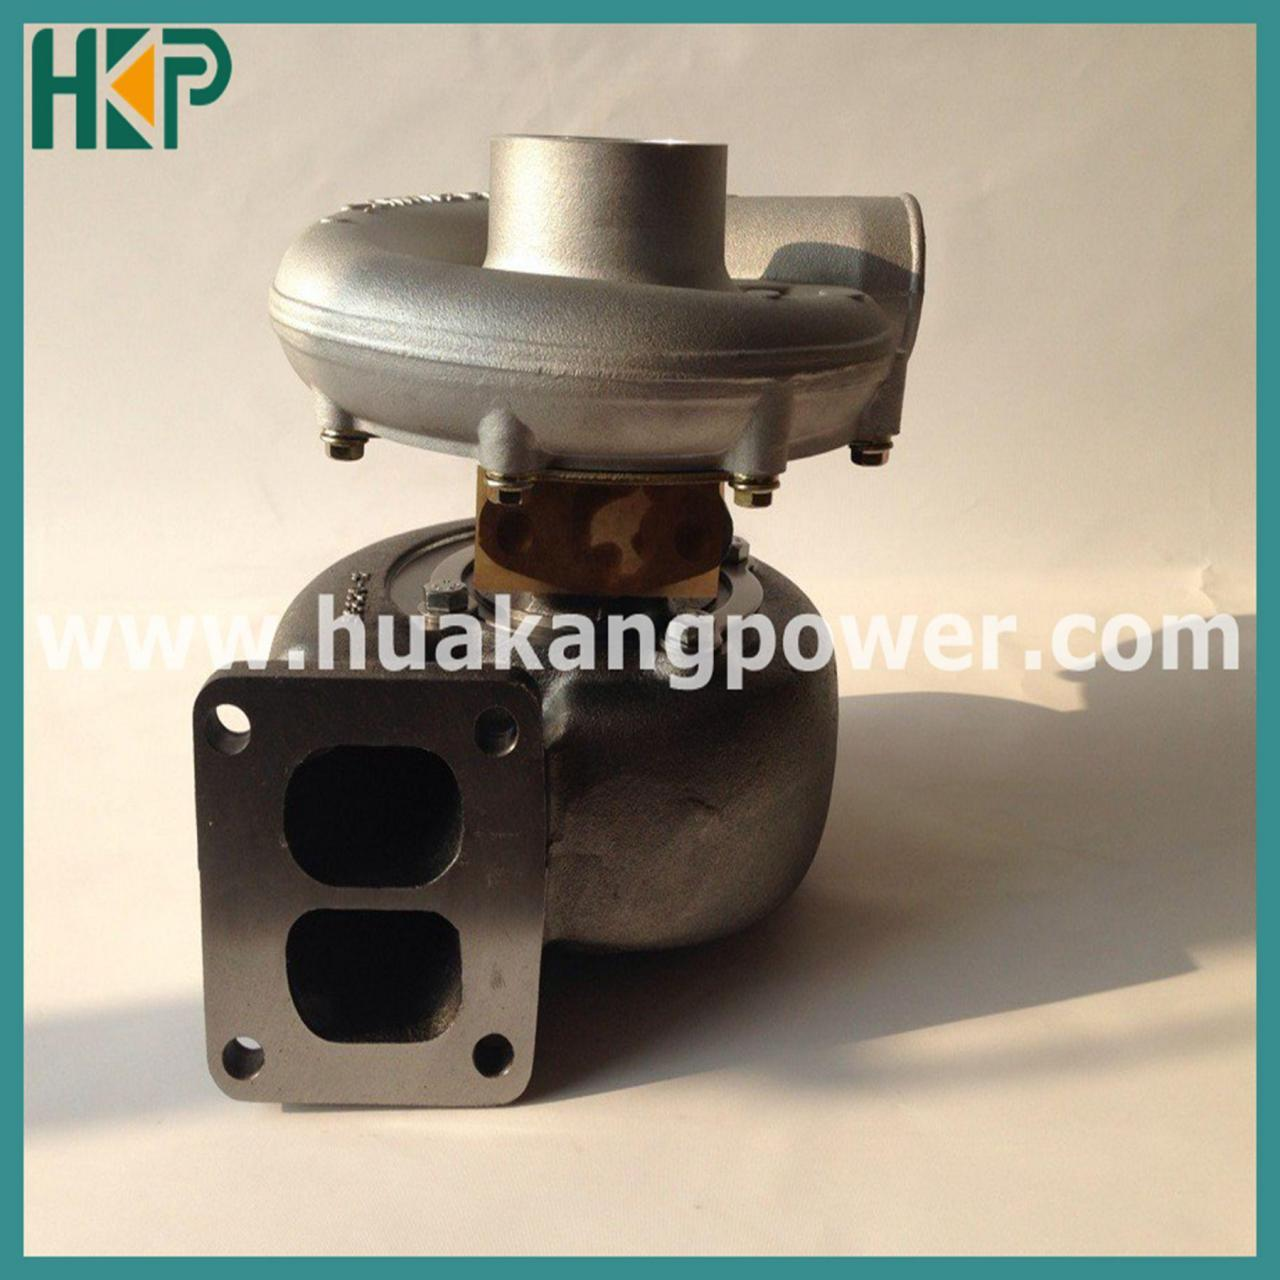 Cheap Turbocharger 3LM319 4N8969 for CAT3306 for sale